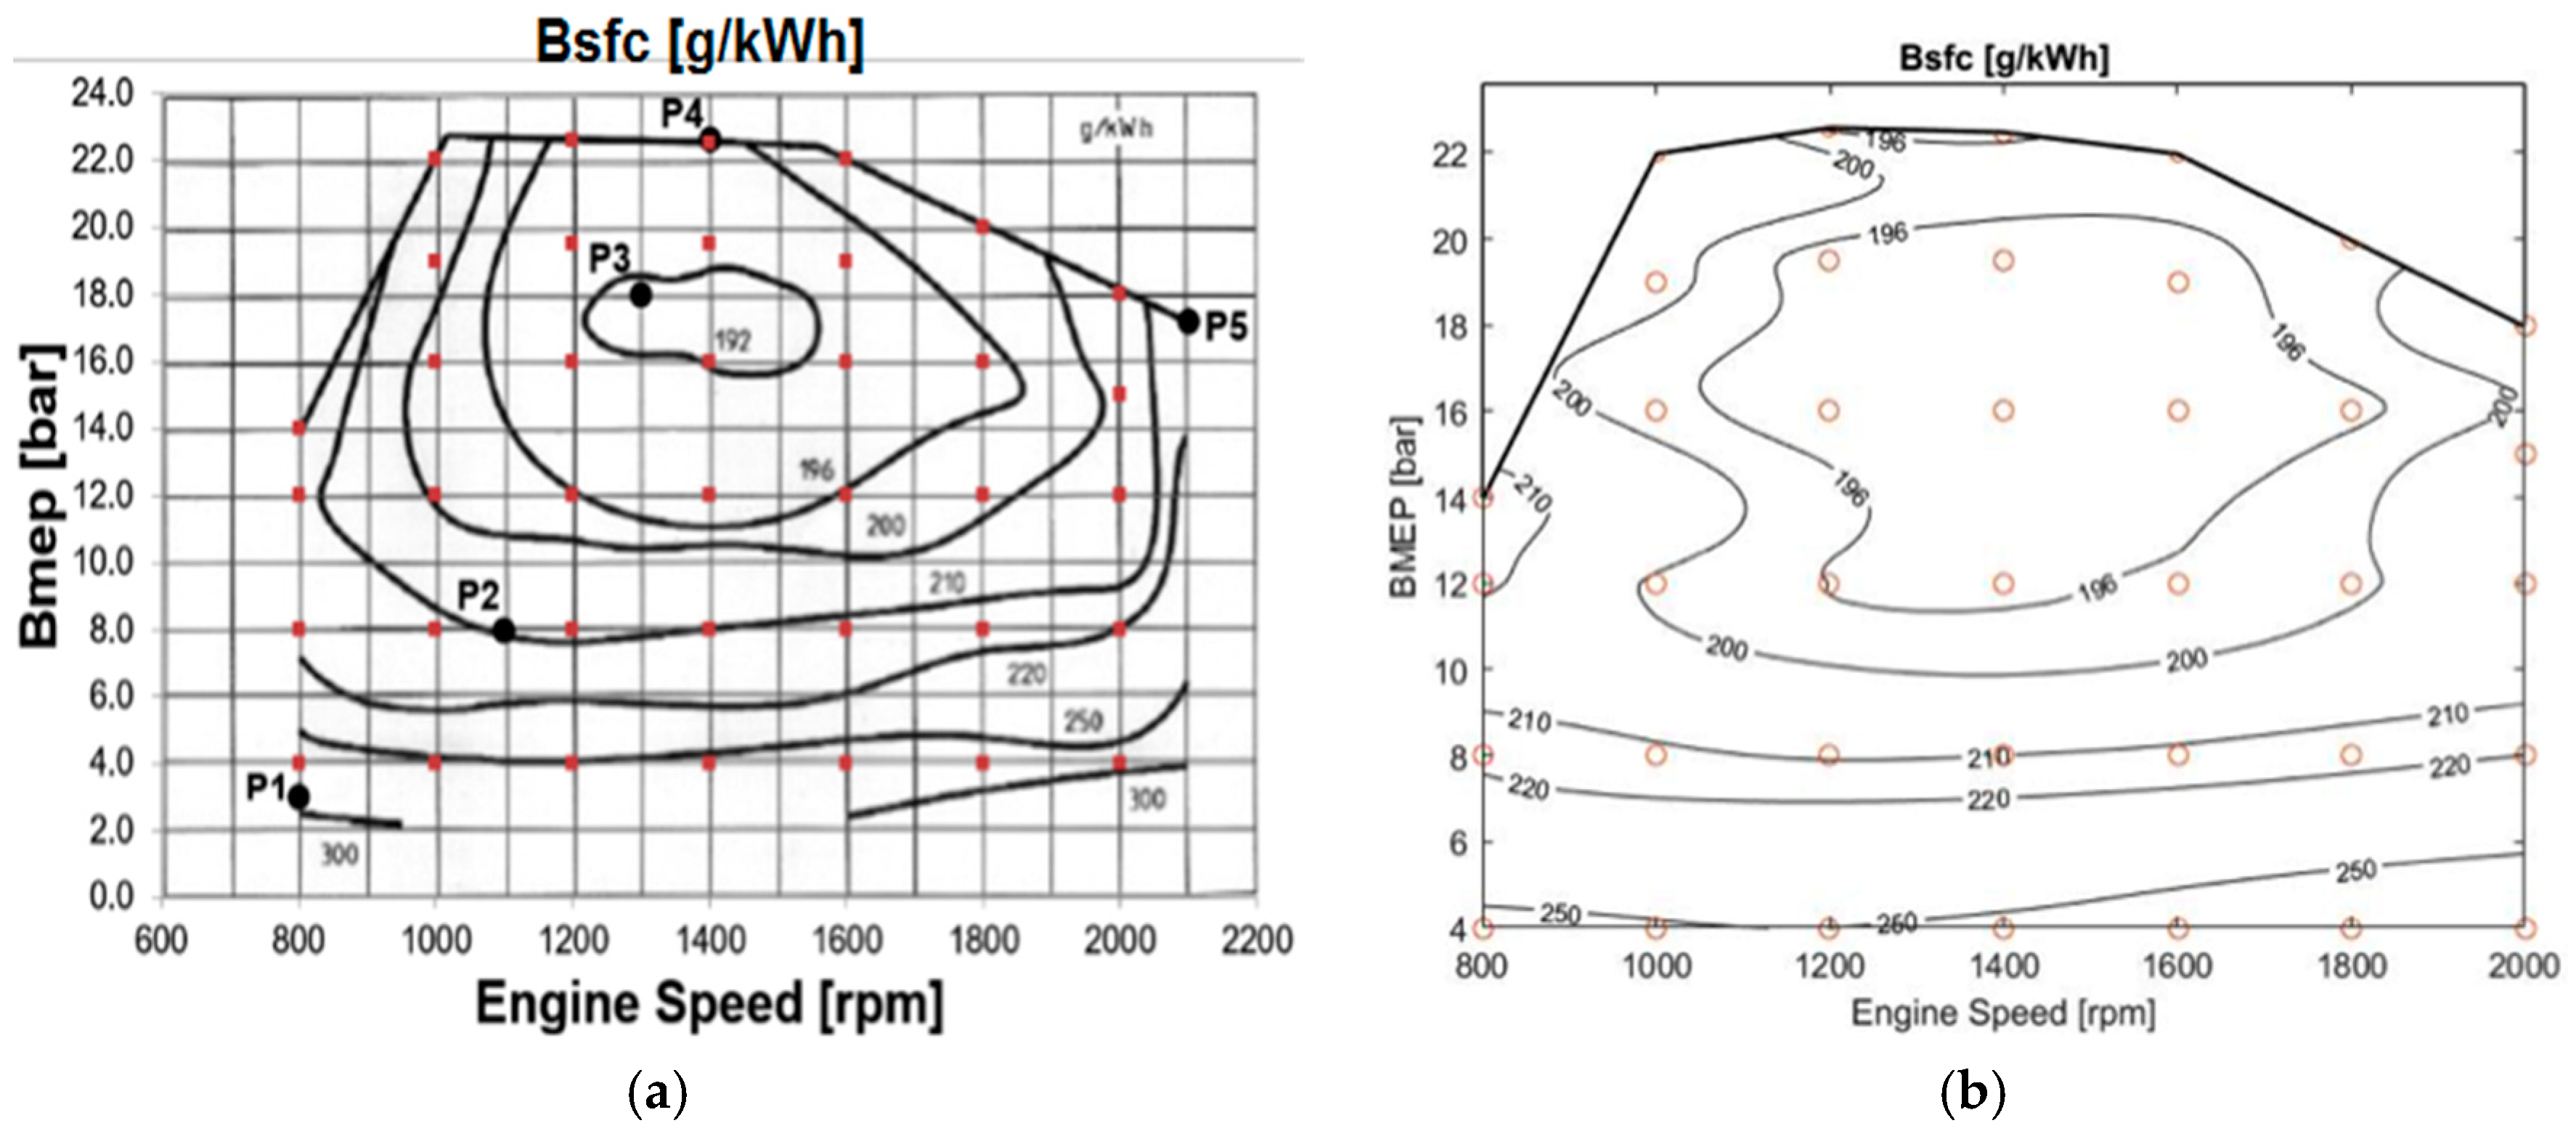 Torque Curve Diesel Vs Petrol >> Energies | Free Full-Text | A Comparative Study of the Effect of Turbocompounding and ORC Waste ...